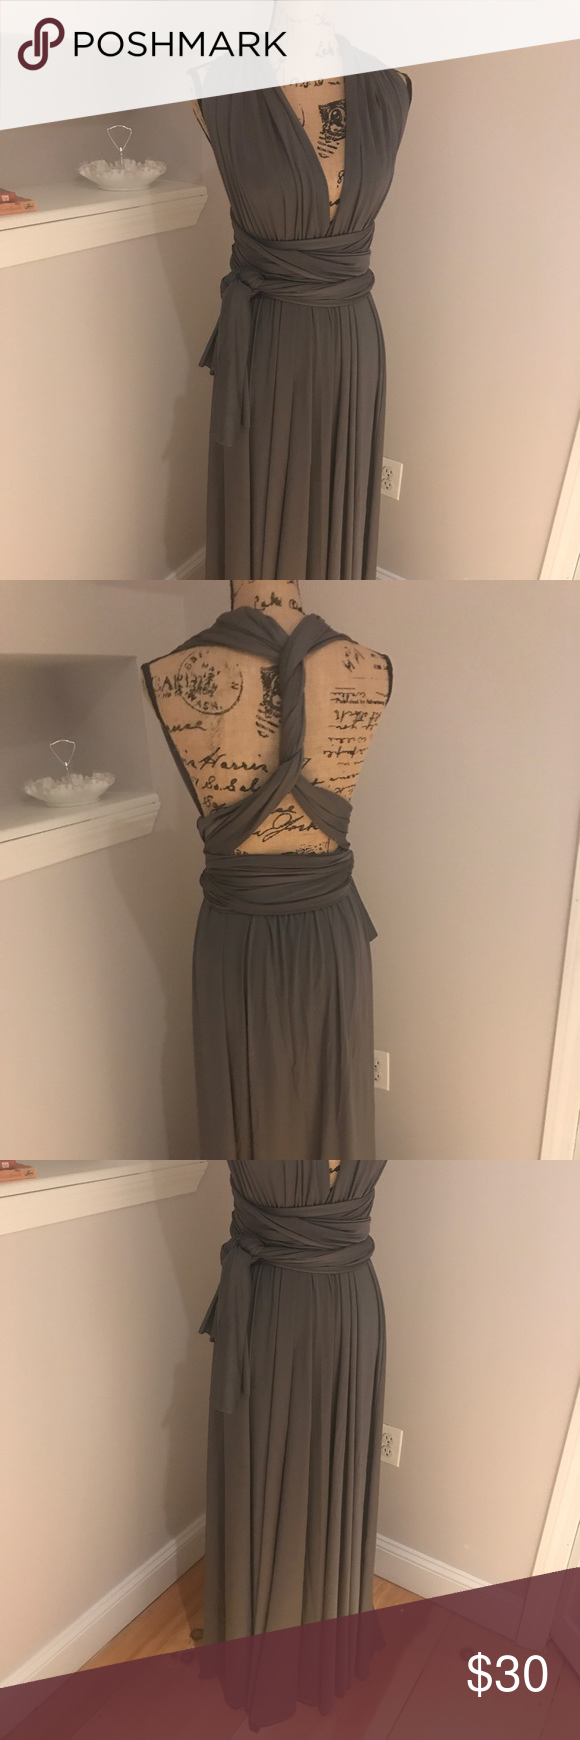 Infinity wrap dress regular and plus Beautiful charcoal infinity wrap dress!  One size fits all.. this will fit from S to XXL.  Sooo many ways to wear this dress and it is flattering on every body type!  This was worn once to a wedding and fit a size 24 great!  So comfortable Dresses